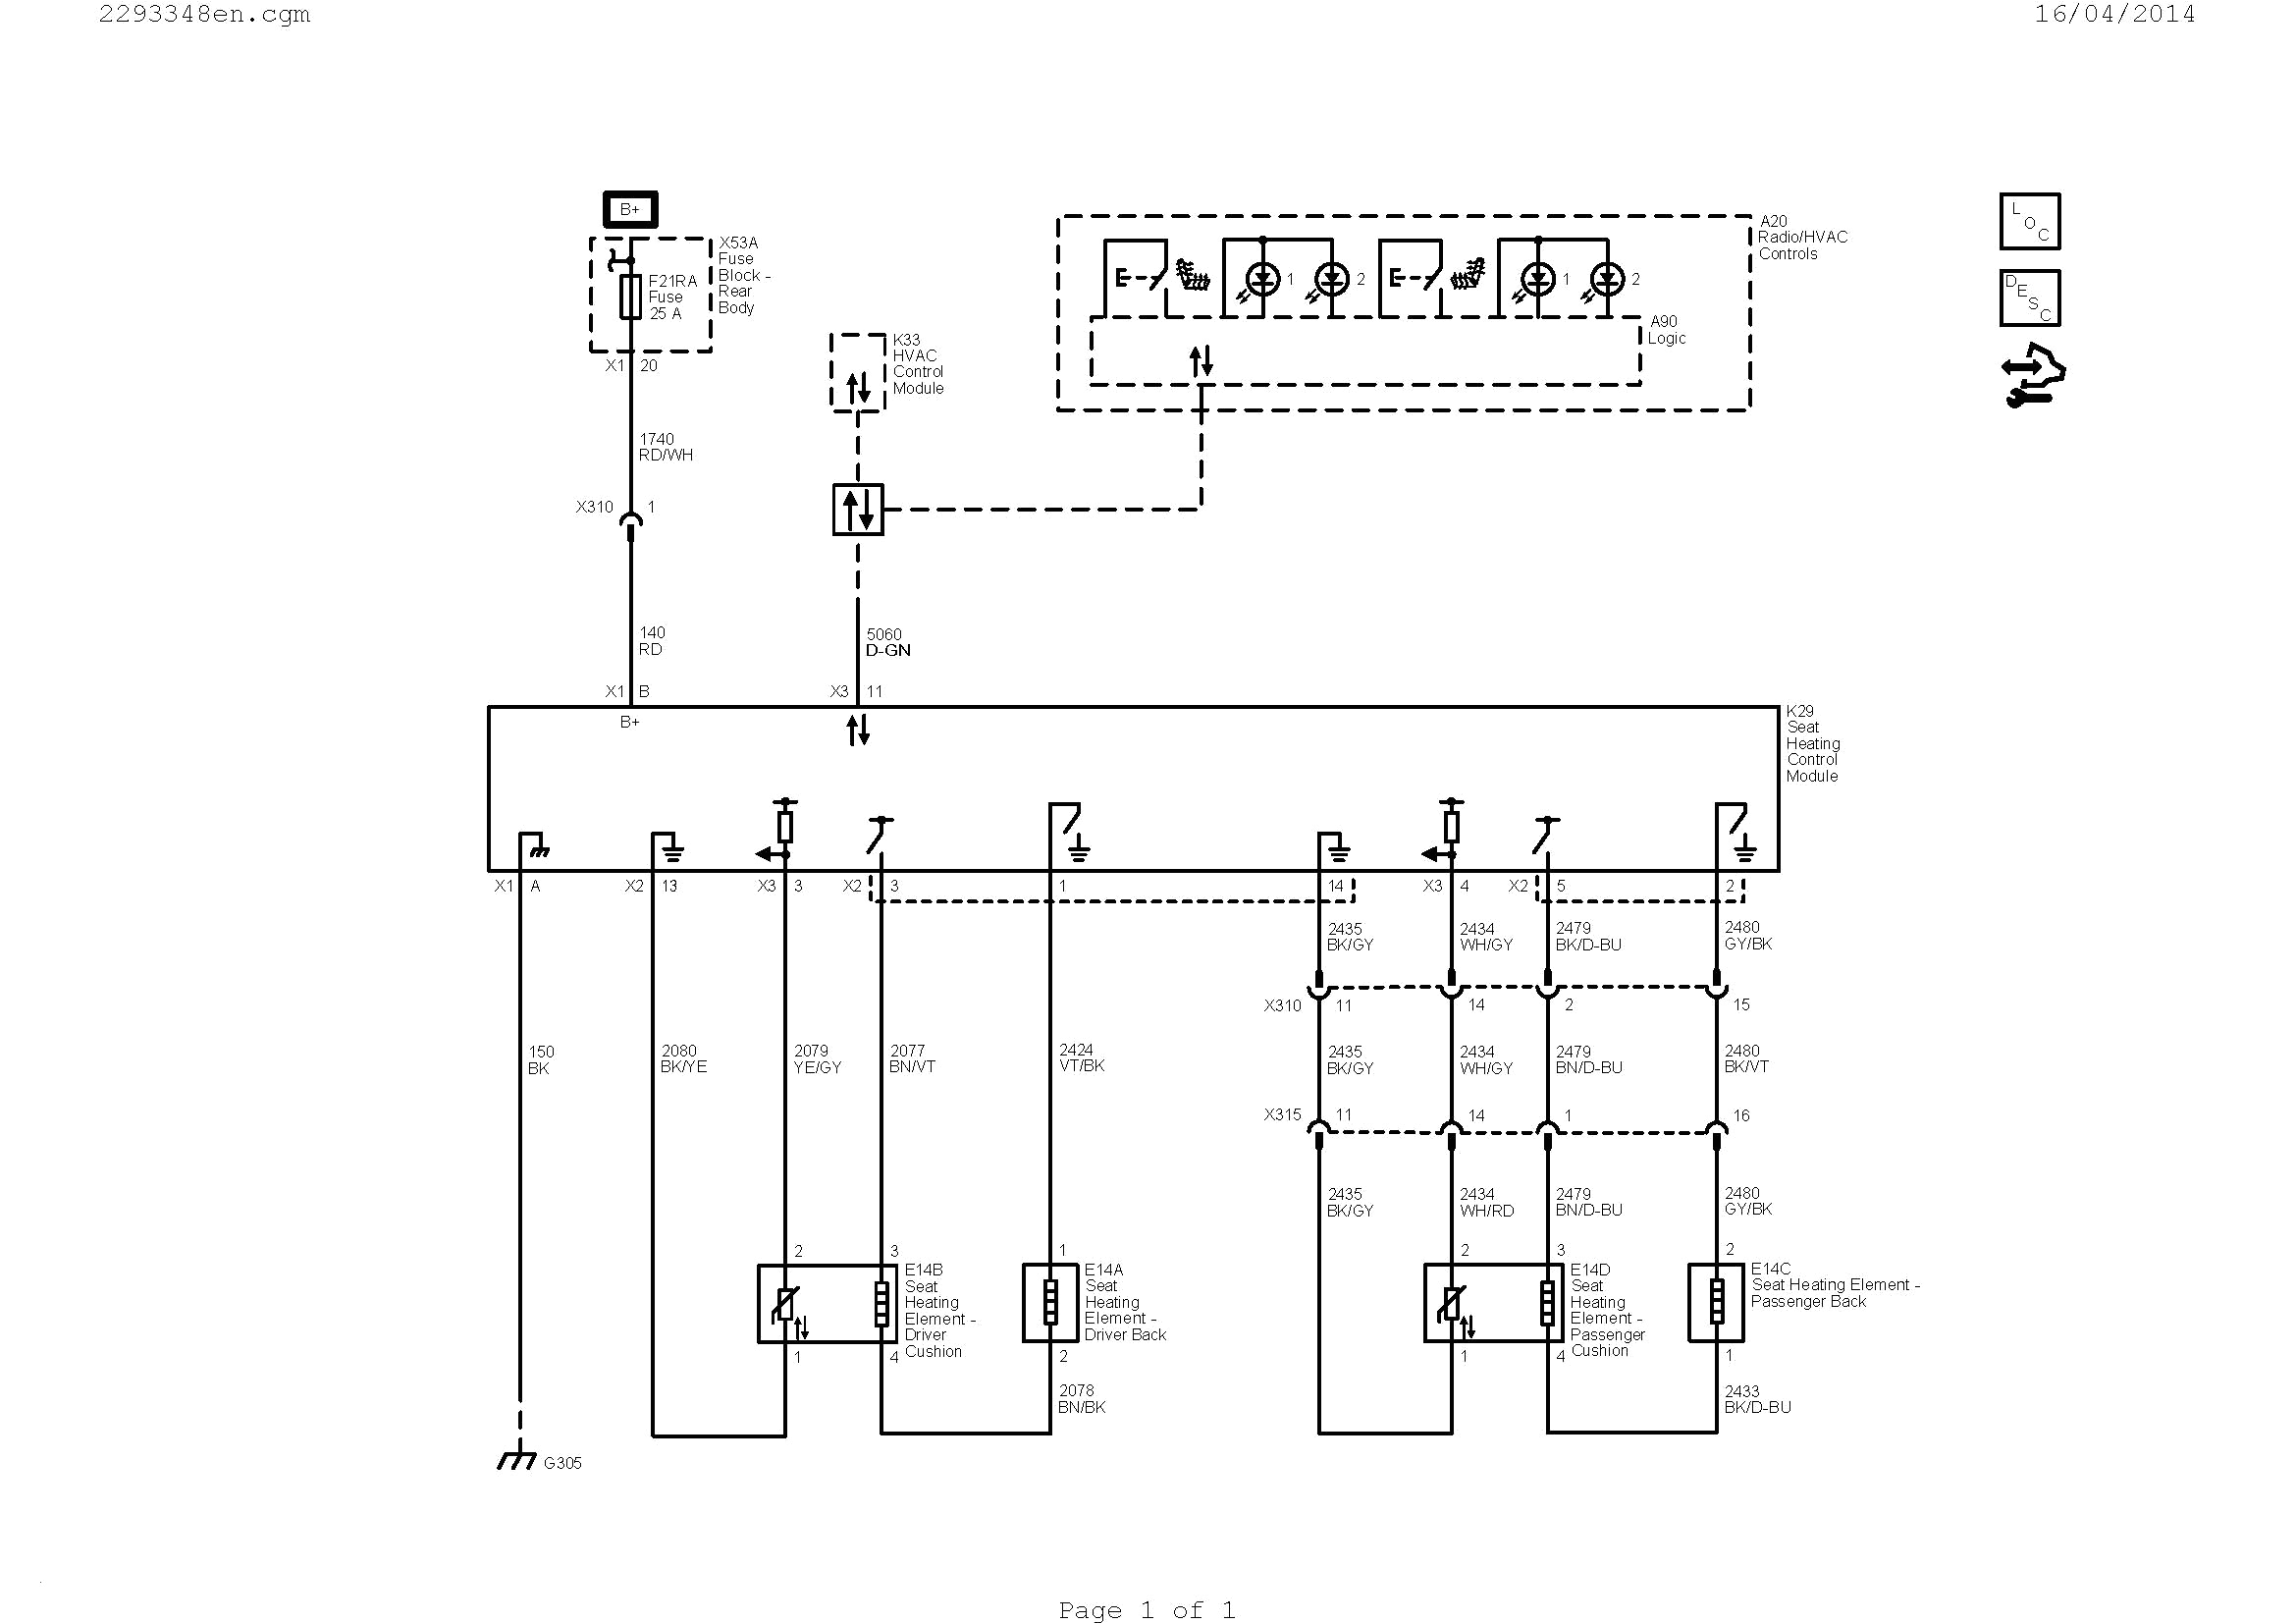 Auto Wiring Diagrams Download Auto Wiring Diagram software Sample